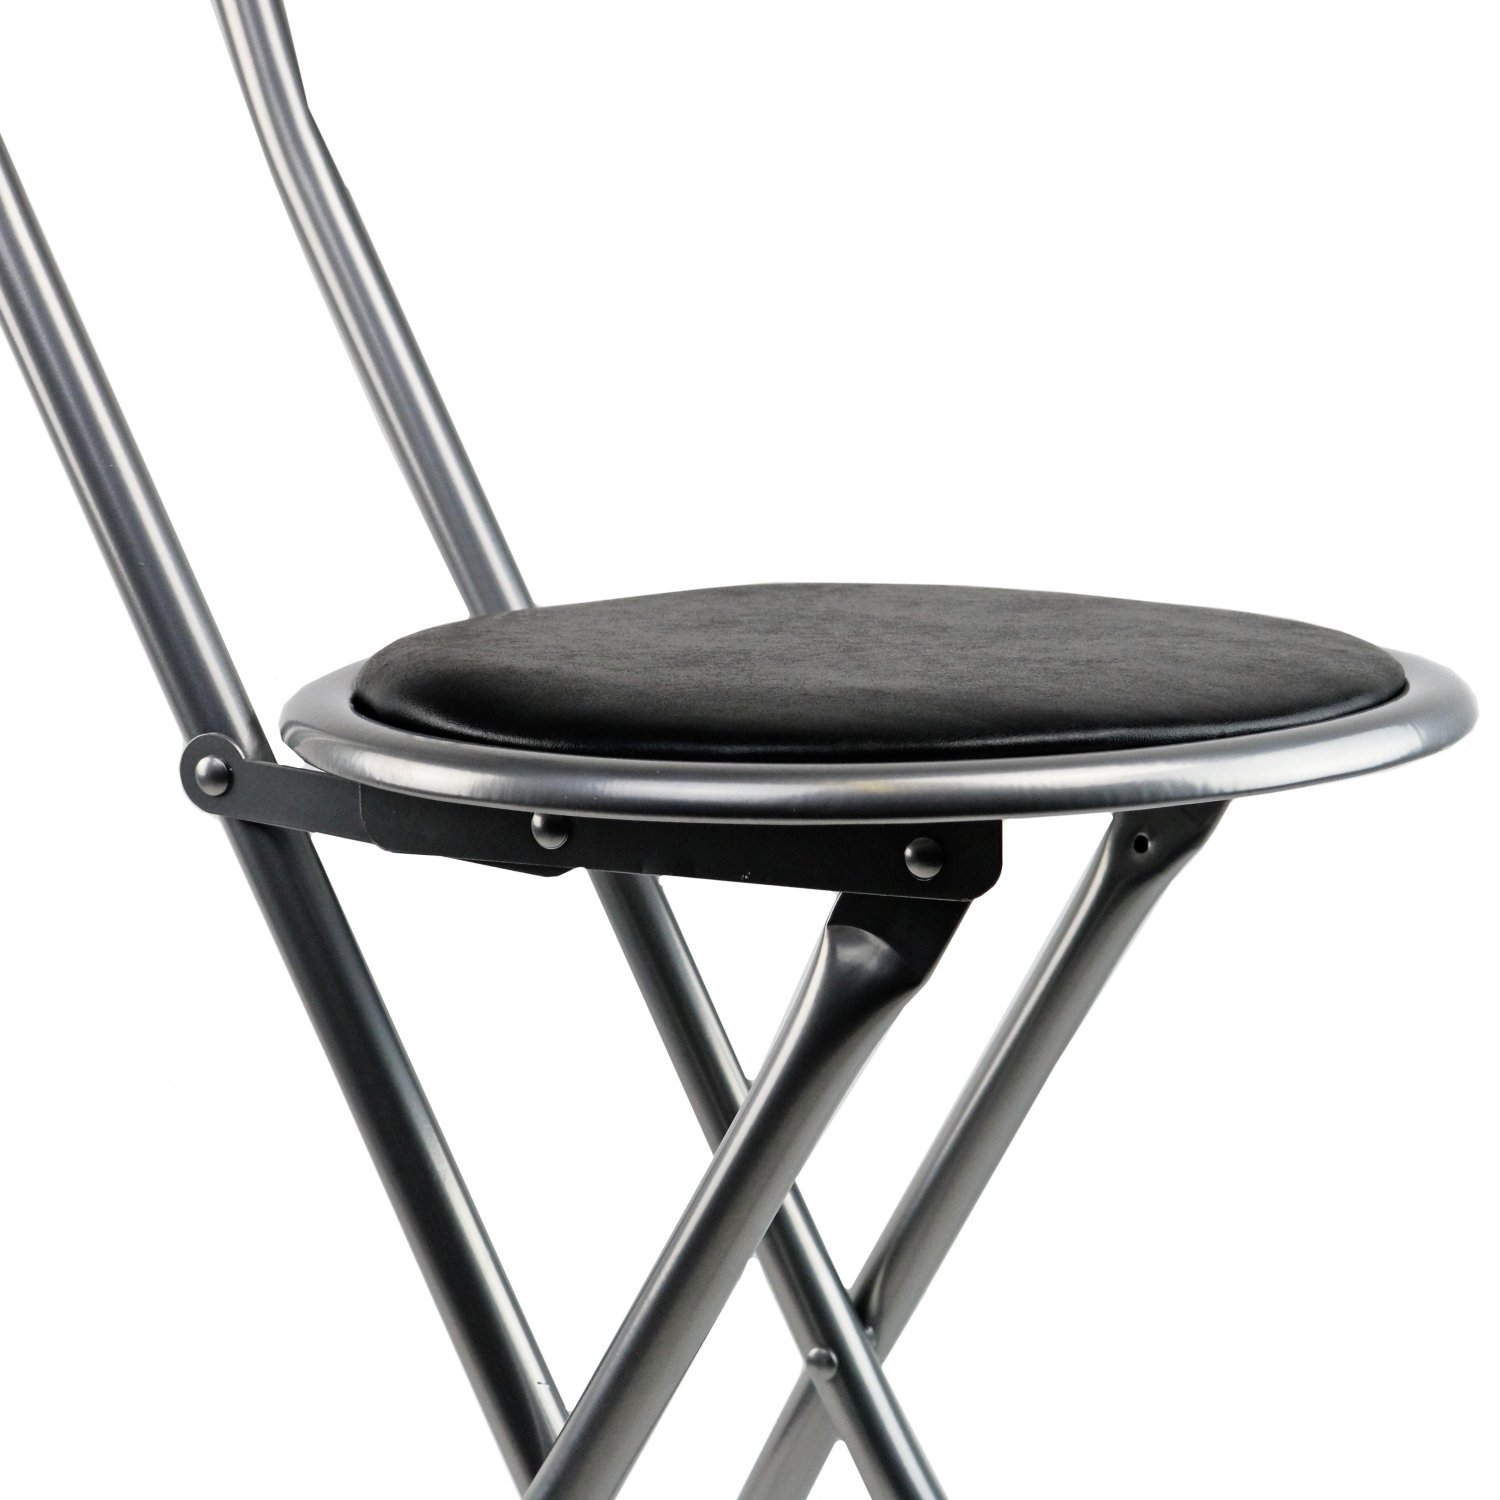 New Black Padded Folding High Chair Breakfast Kitchen Bar Stool Seat Ebay